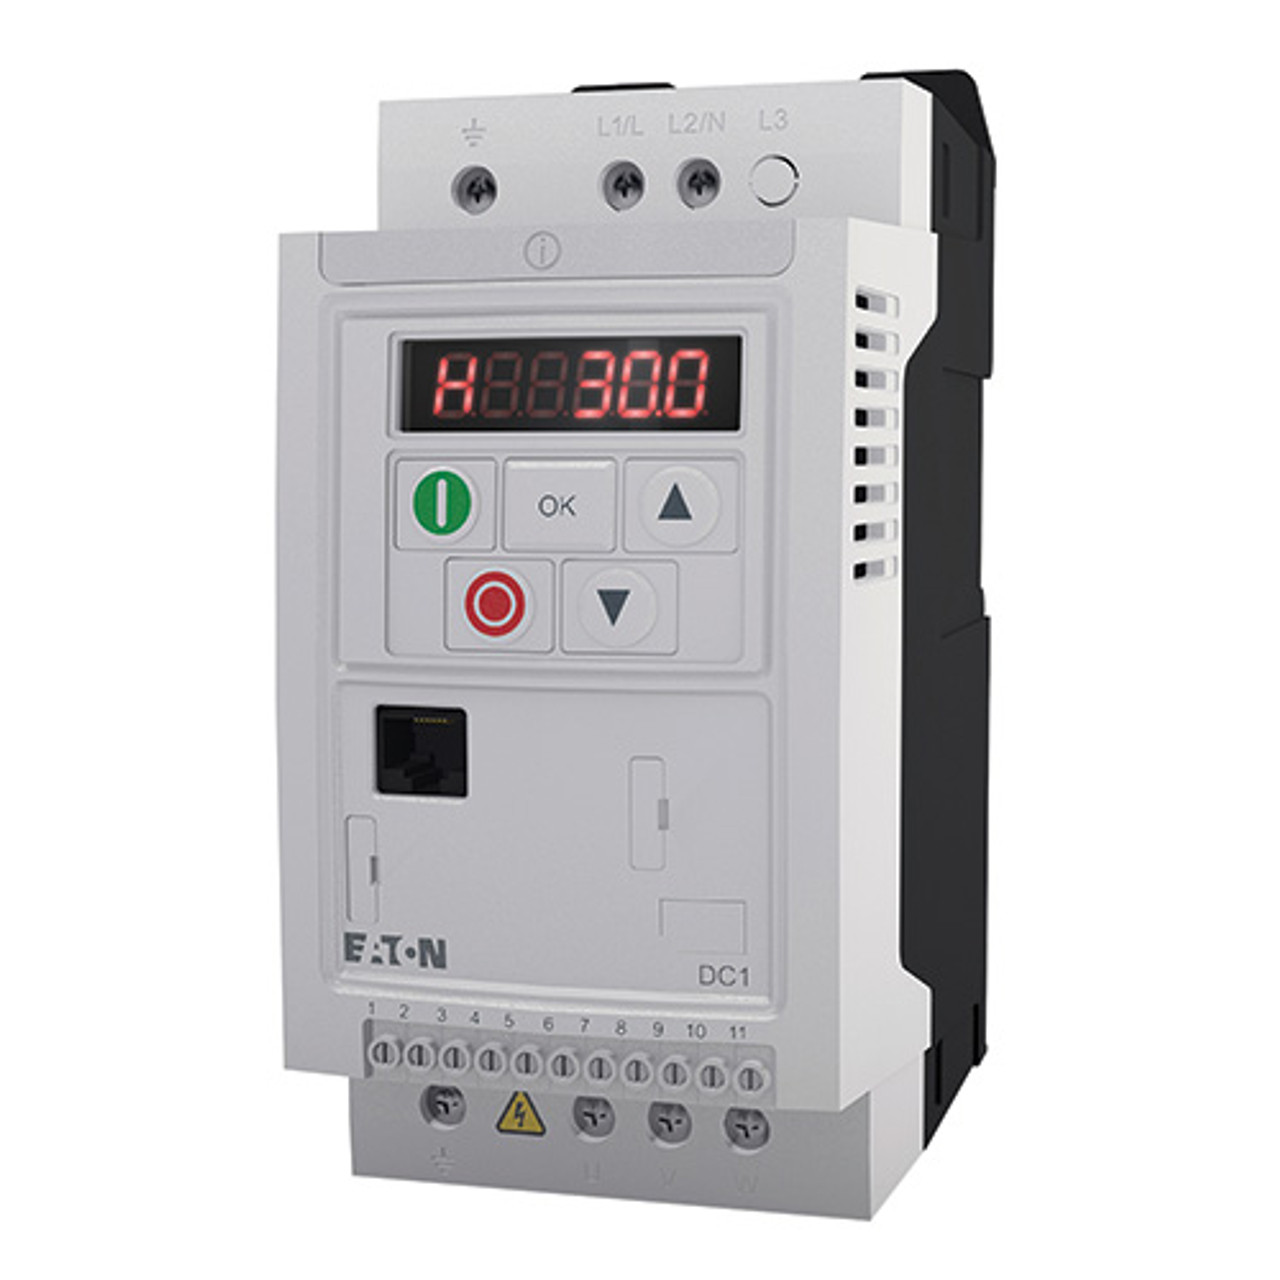 1HP 230V 1PH In / 230 3PH Out, IP20 DC1 VFD